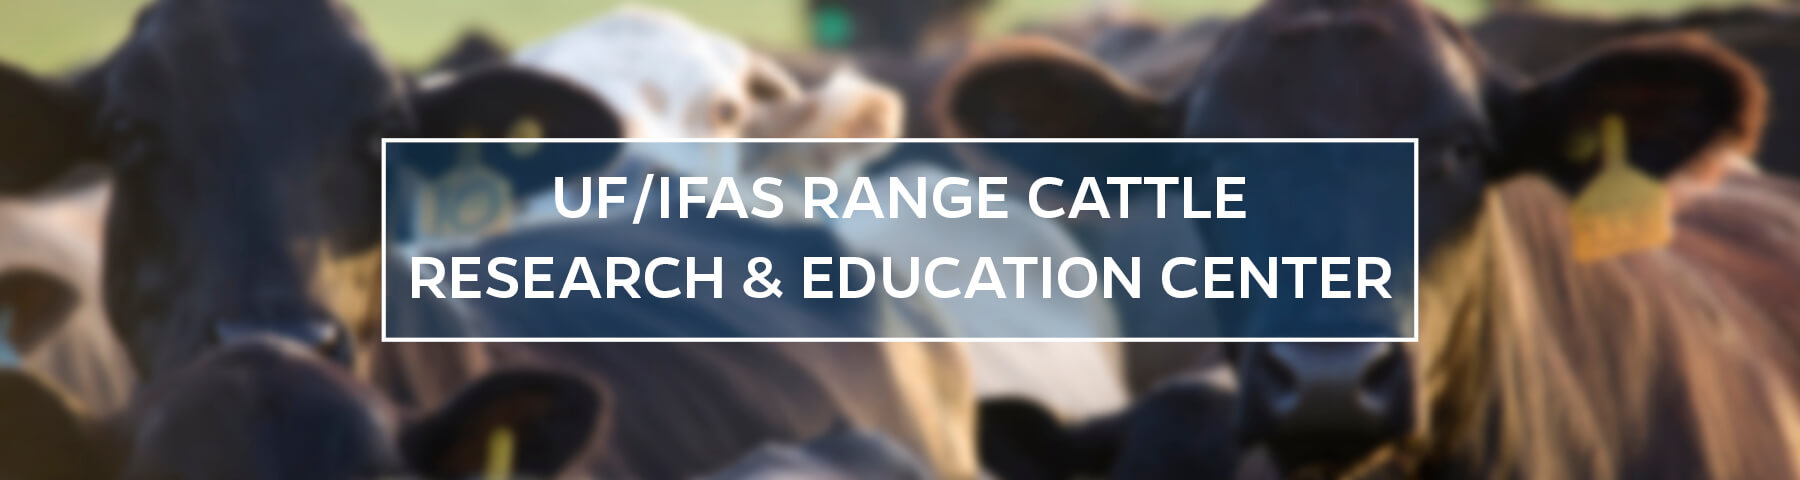 UF/IFAS Range Cattle Research and Education Center